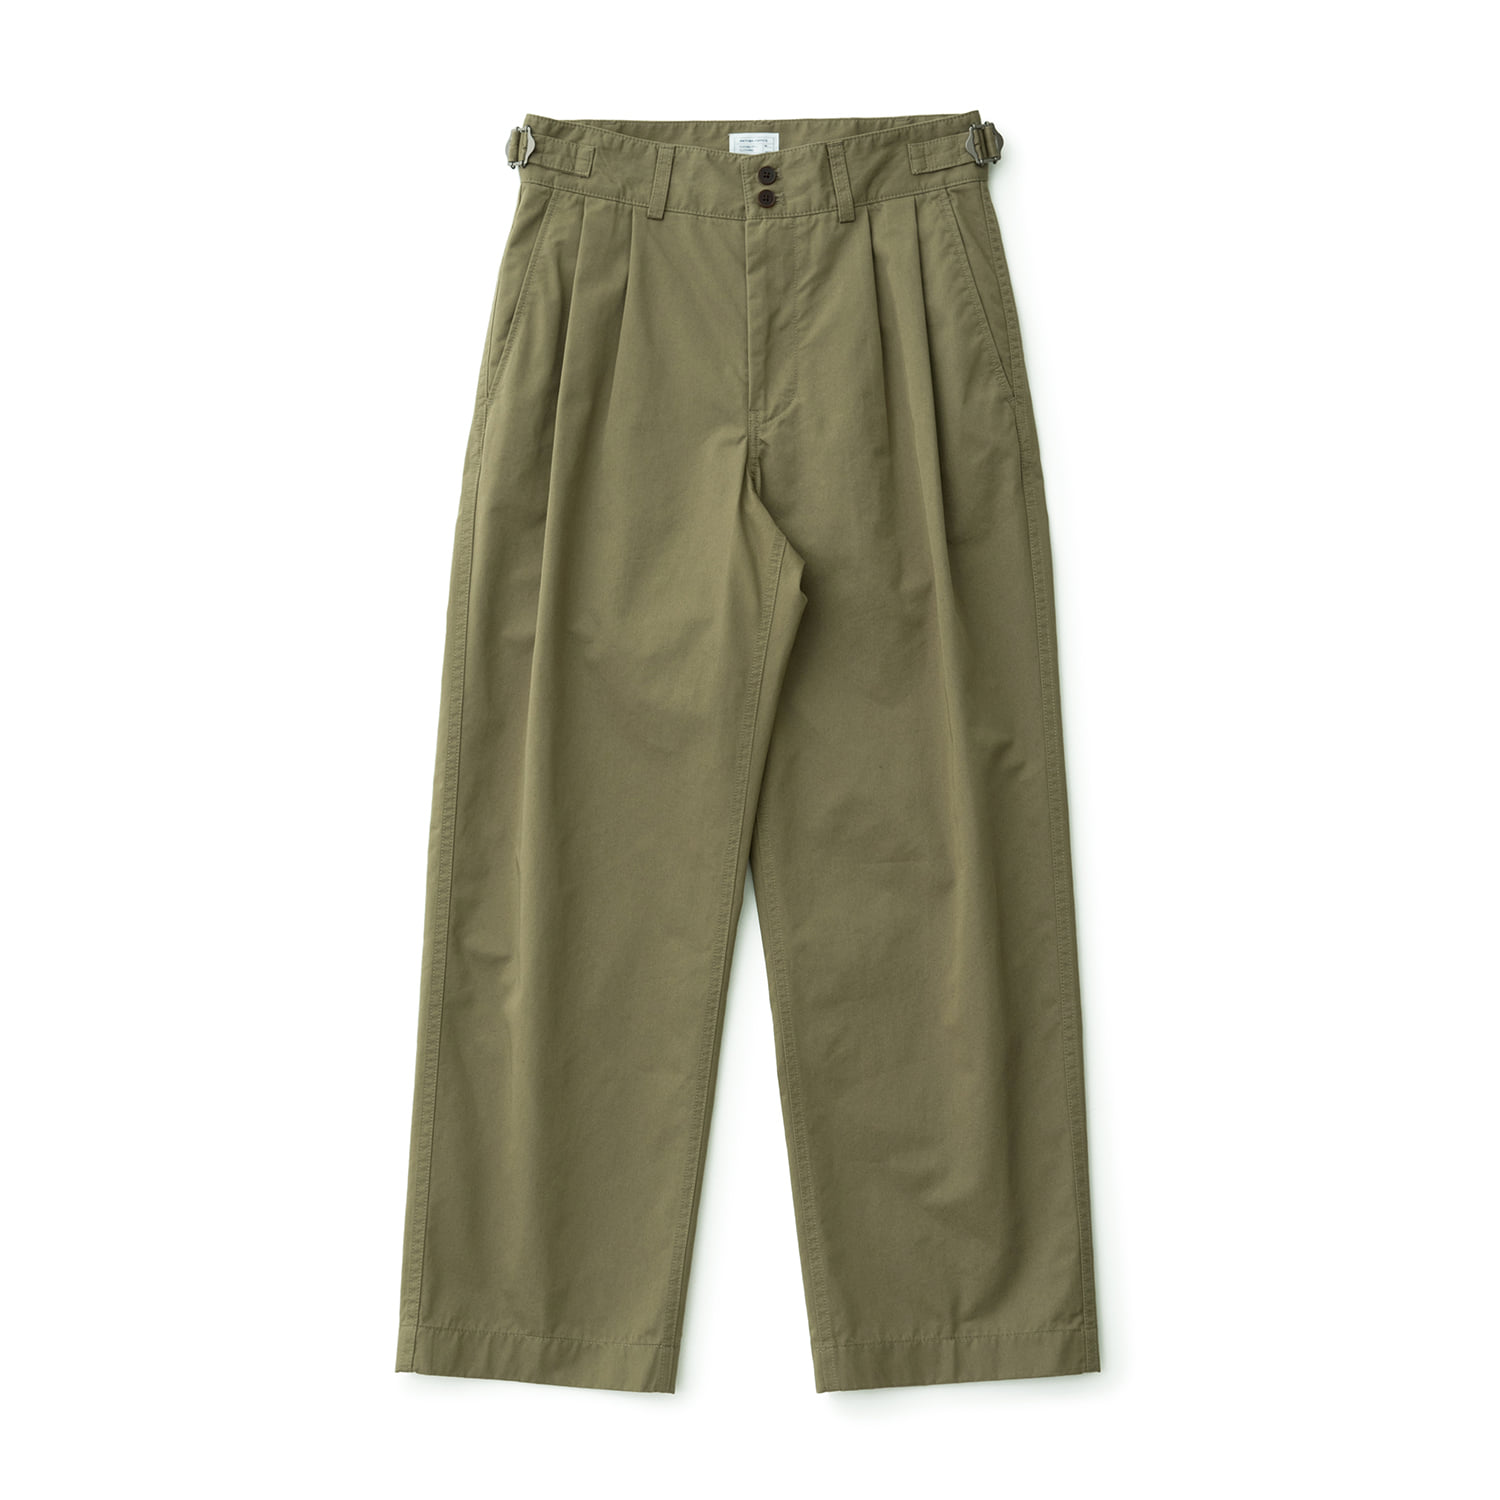 21SS Santiago Pants (Light Olive)